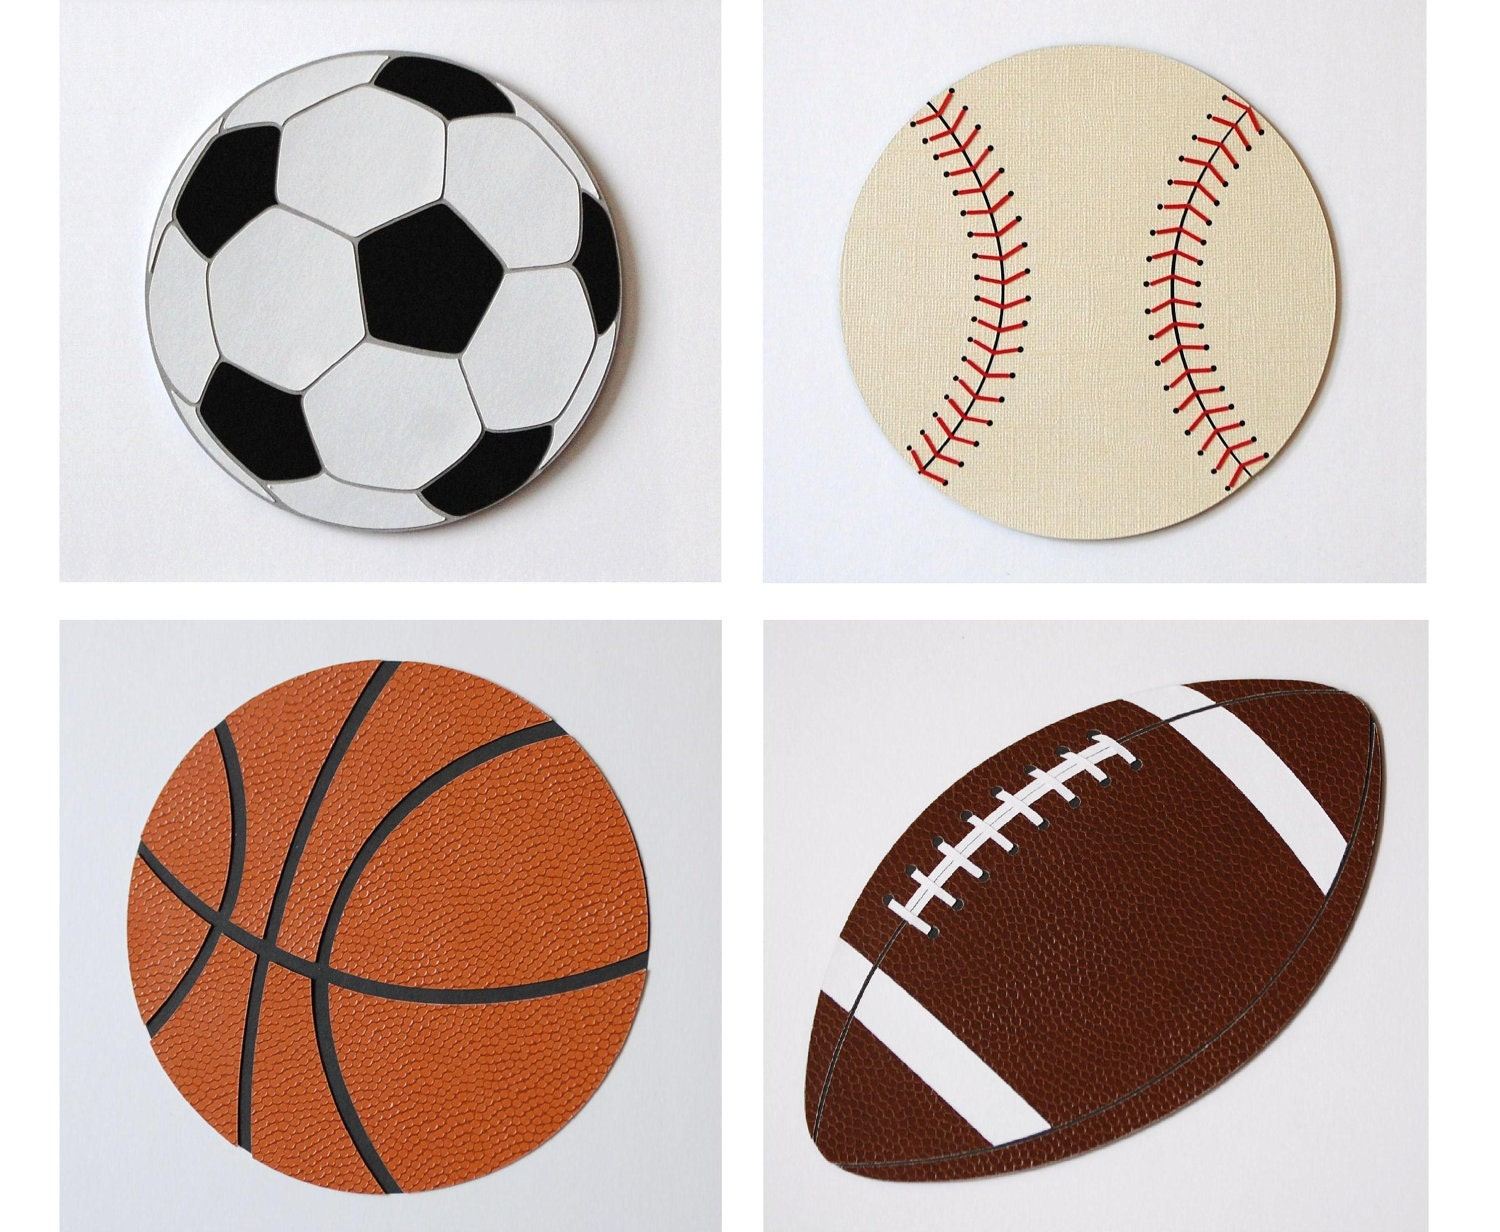 Sports Theme Kids Wall Decor Baseball Decor Football by WallDuds